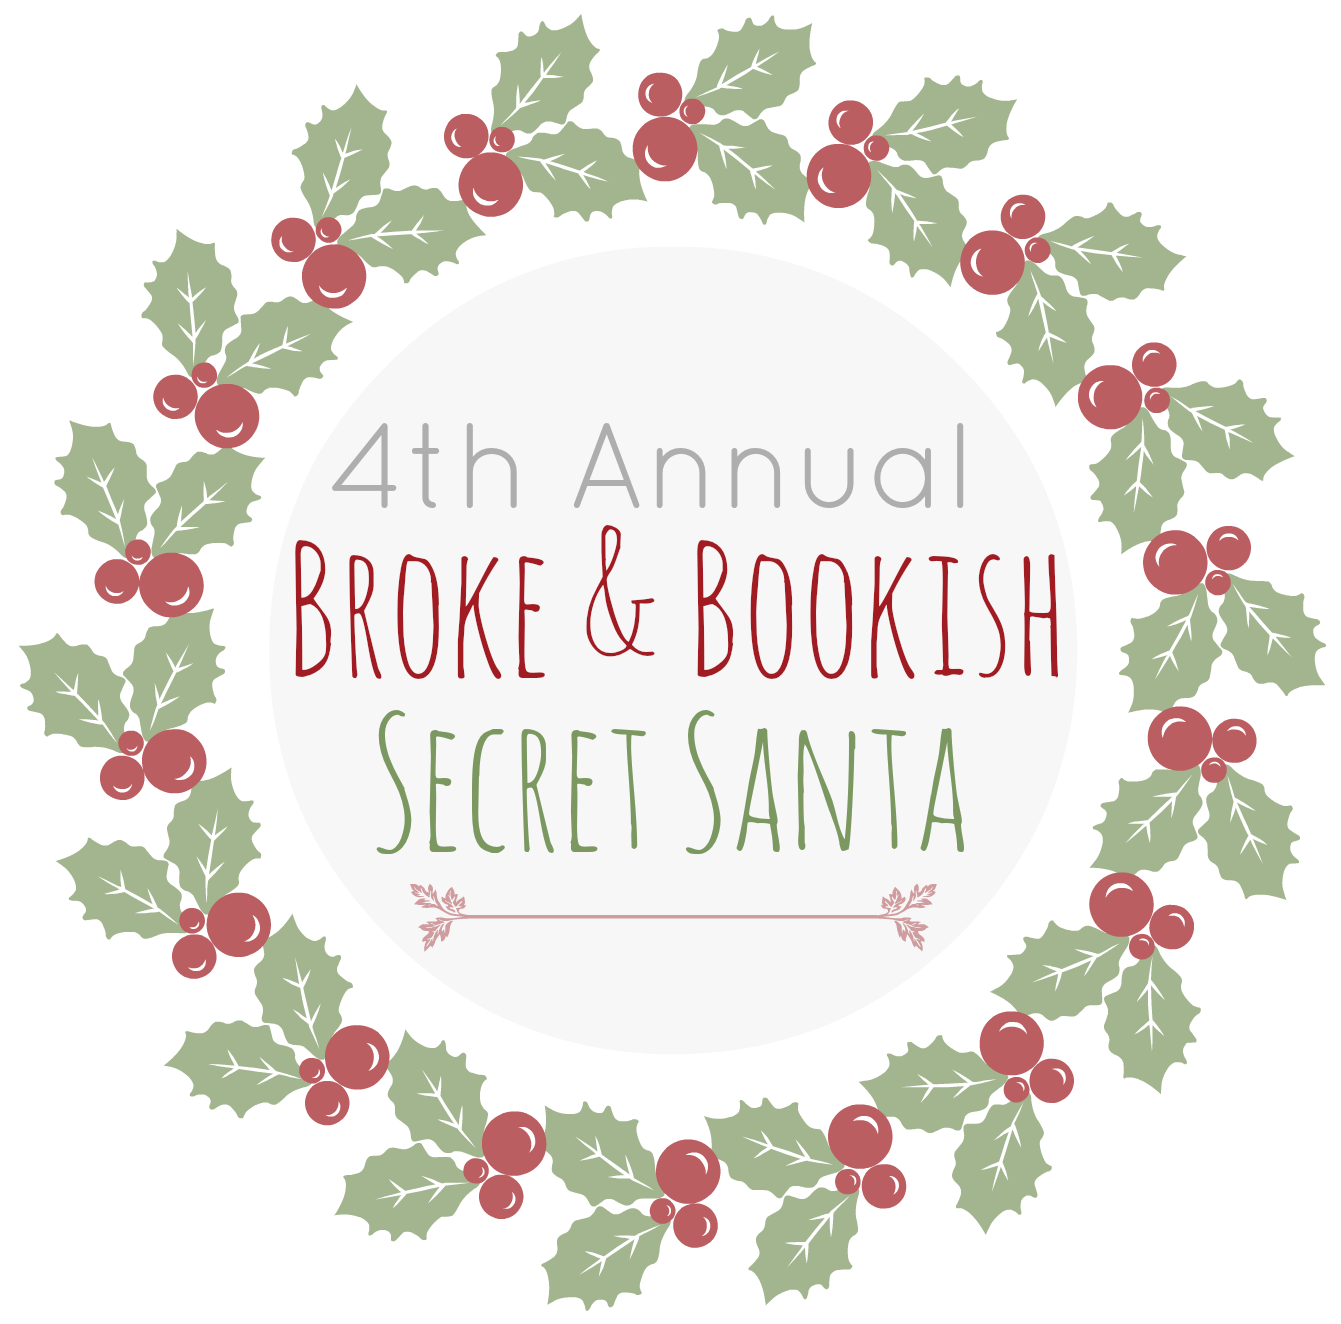 Want to be a Bookish Secret Santa?